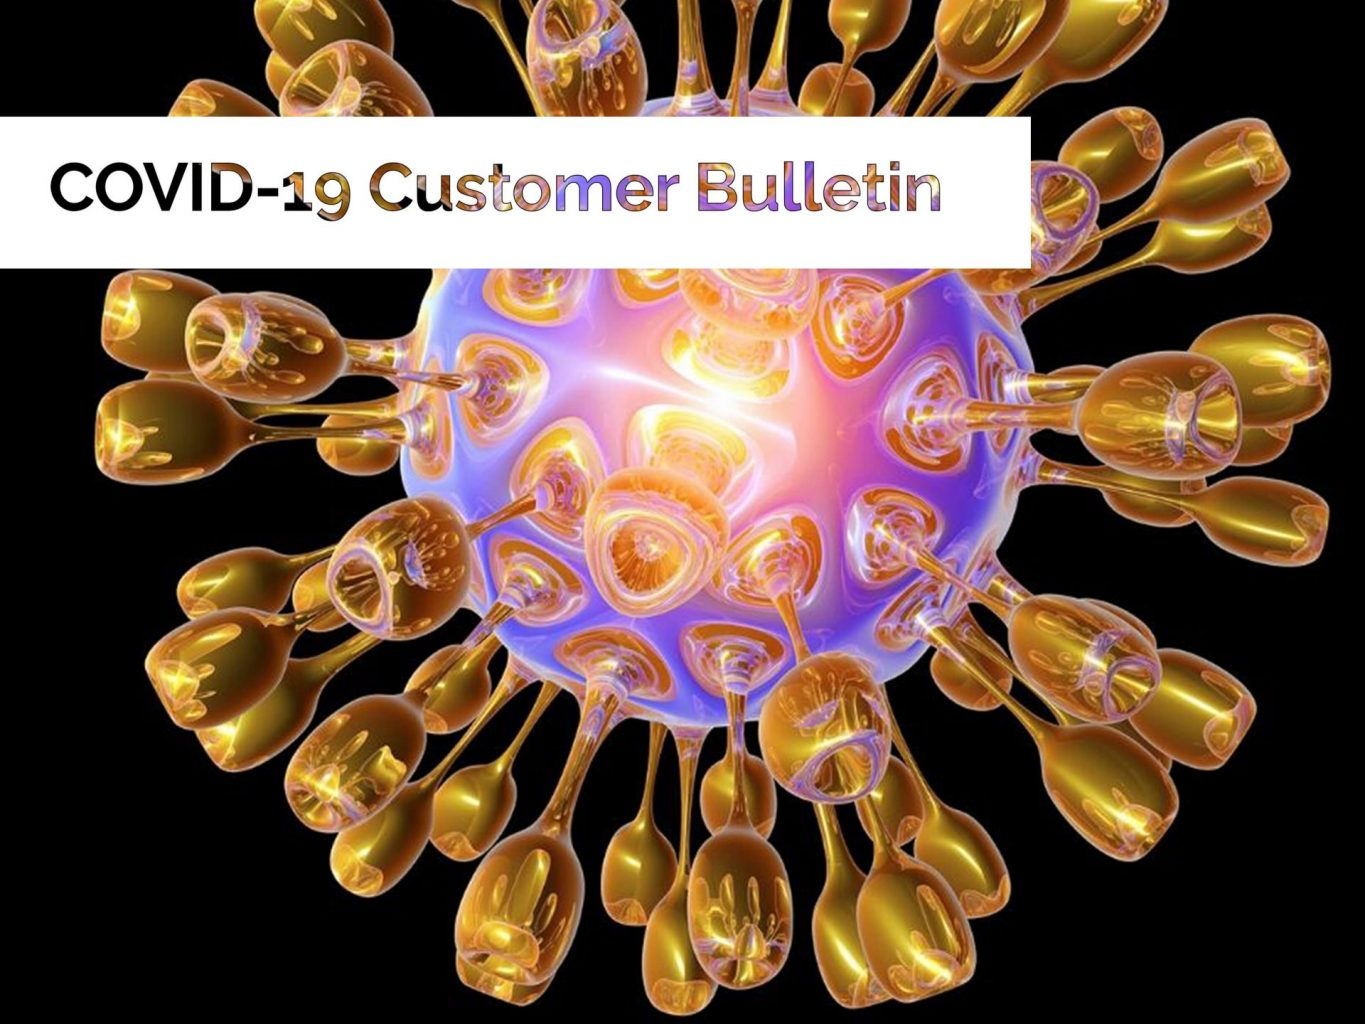 Covid-19 Customer Bulletin